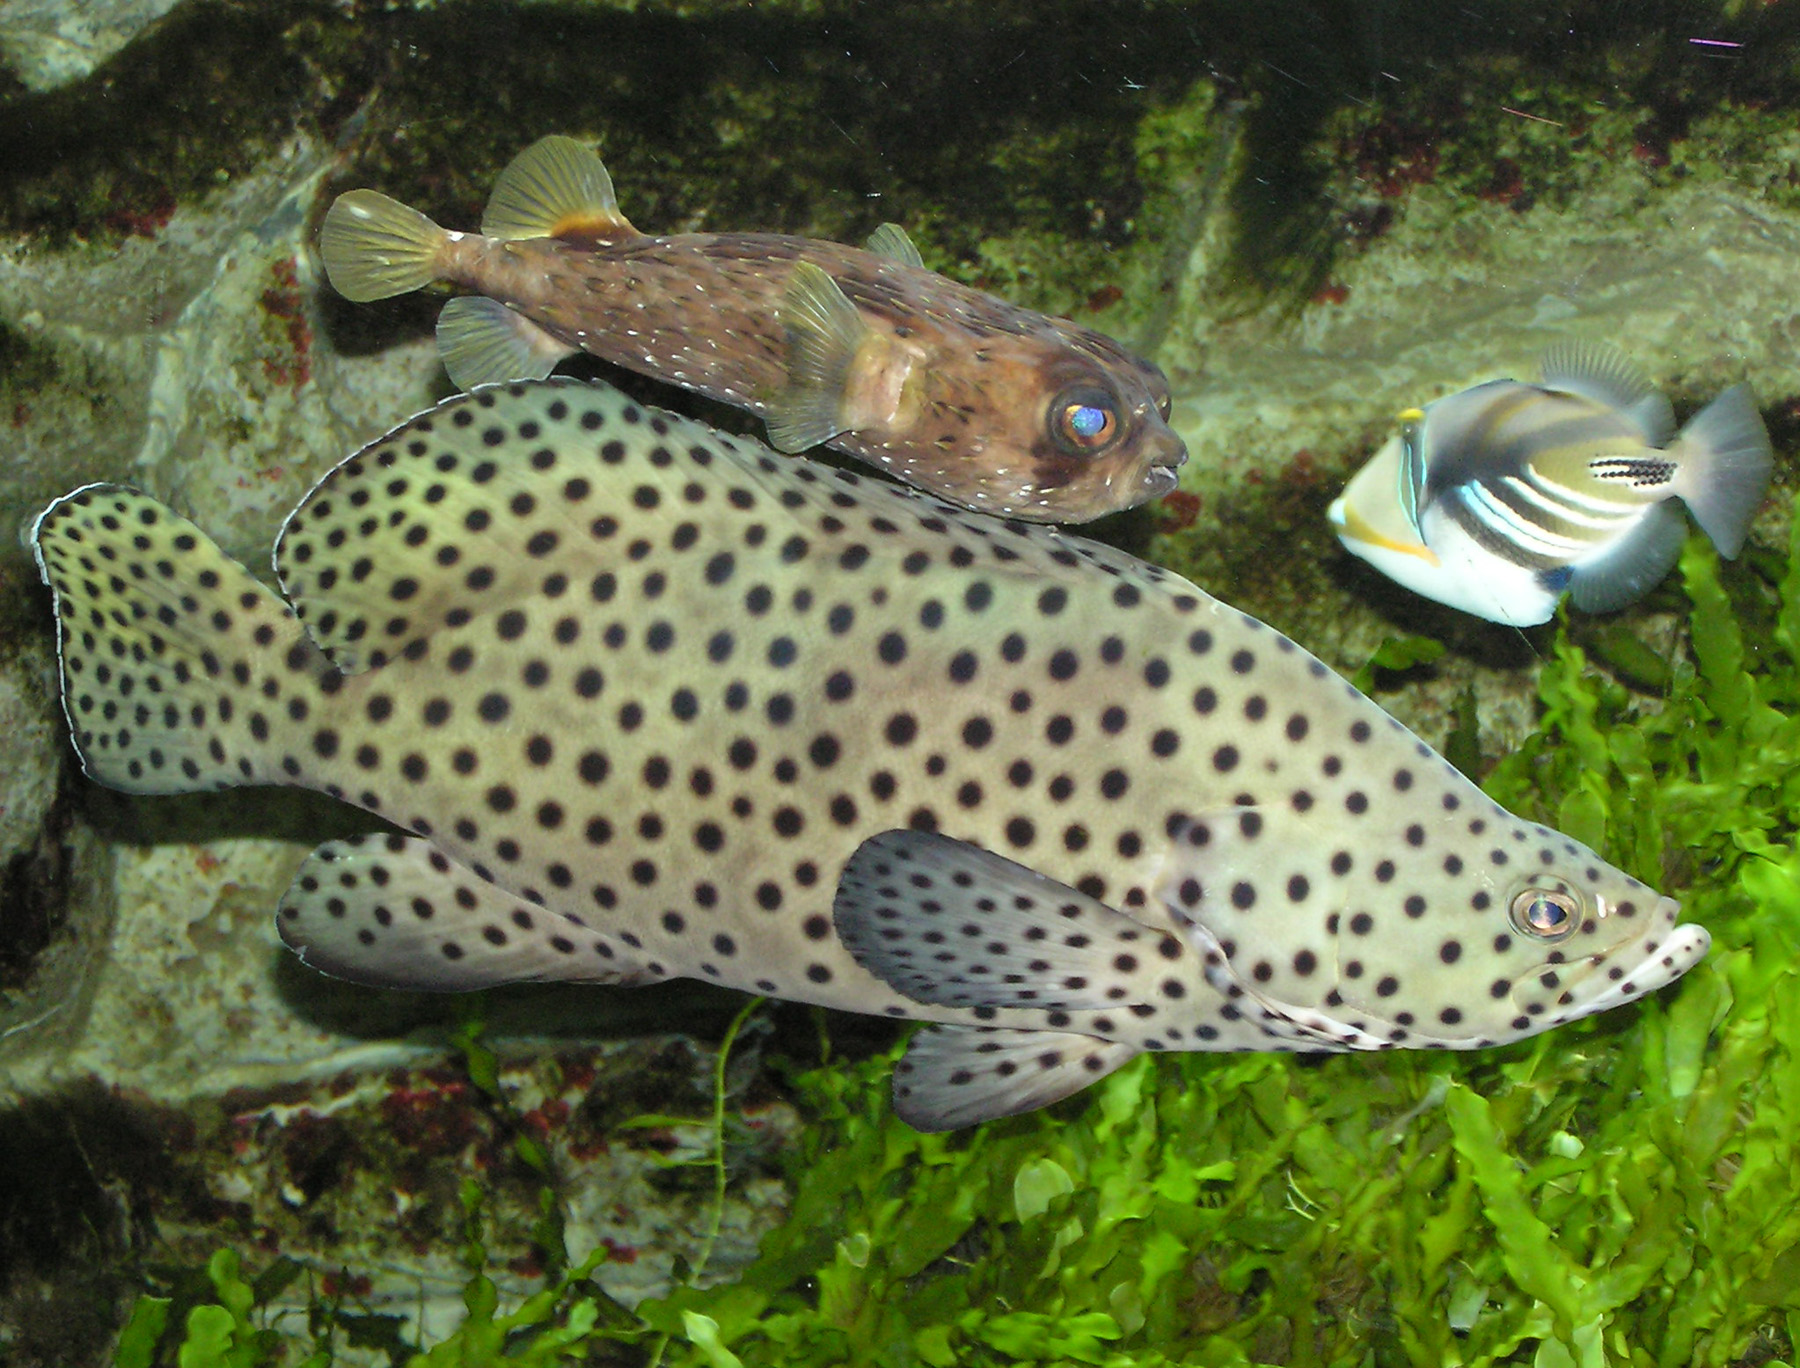 A starter fish to avoid--the panther grouper